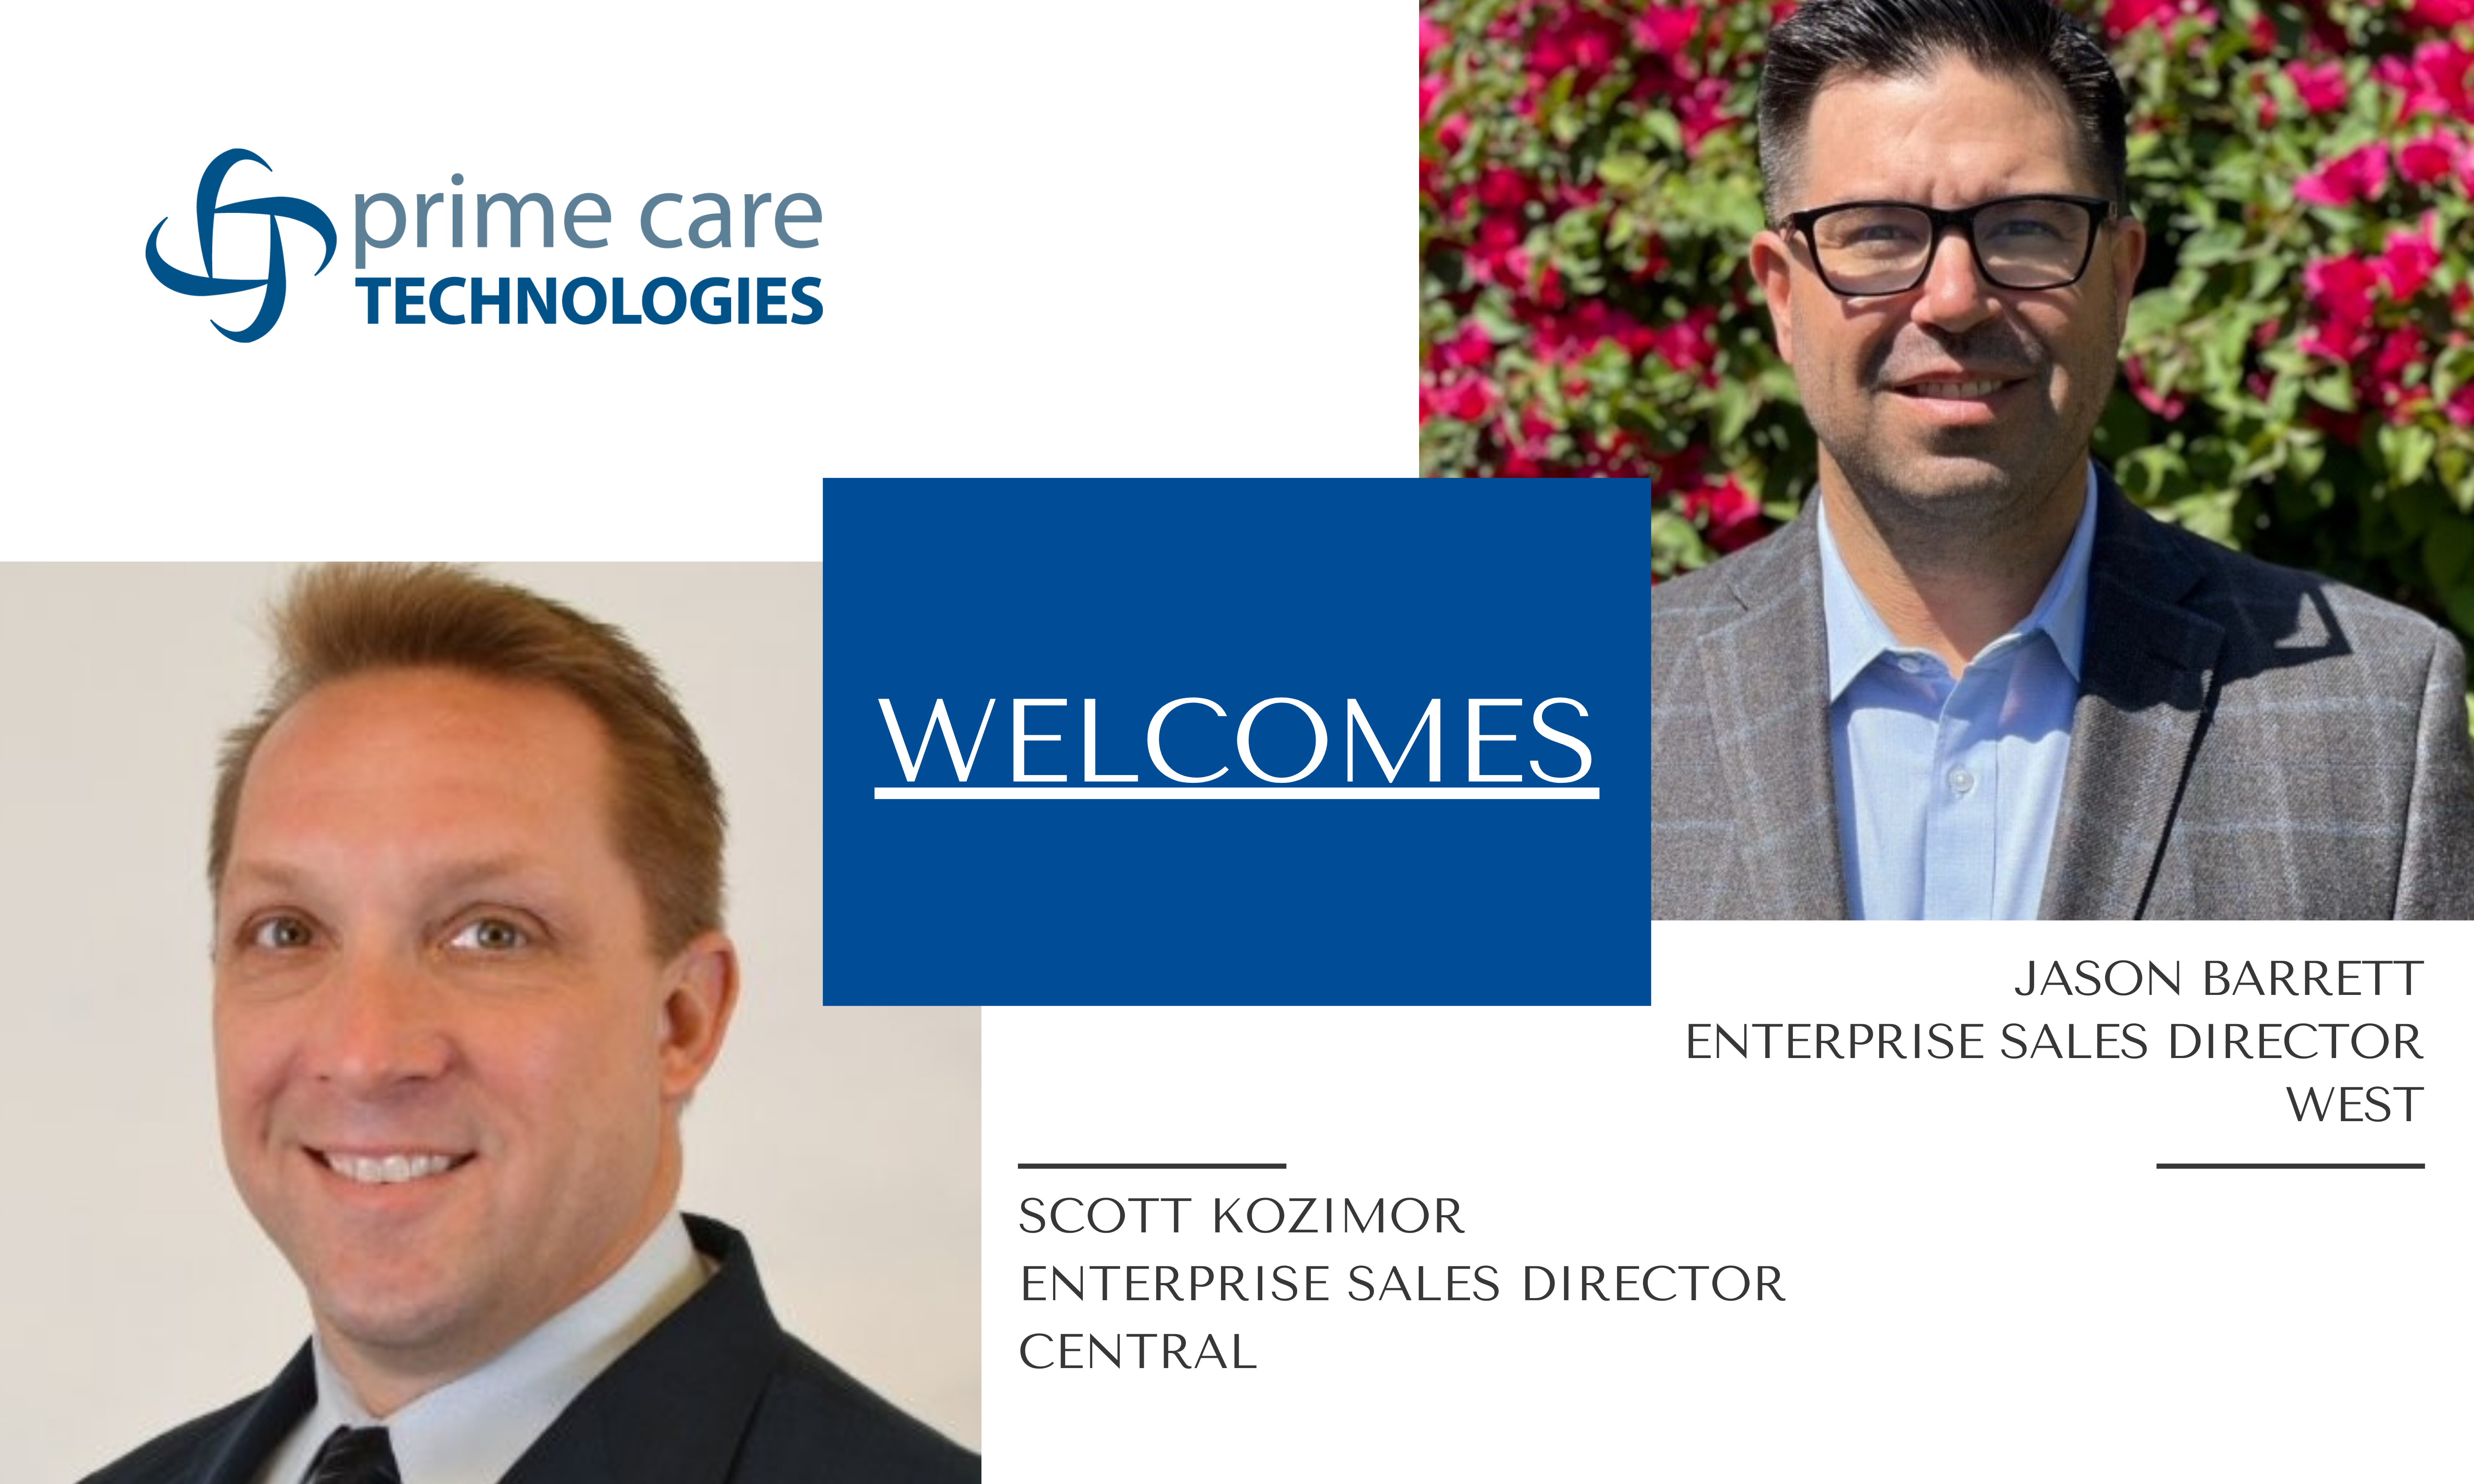 PRIME CARE TECH EXPANDS BUSINESS WITH HIRE OF SCOTT KOZIMOR AND JASON BARRETT